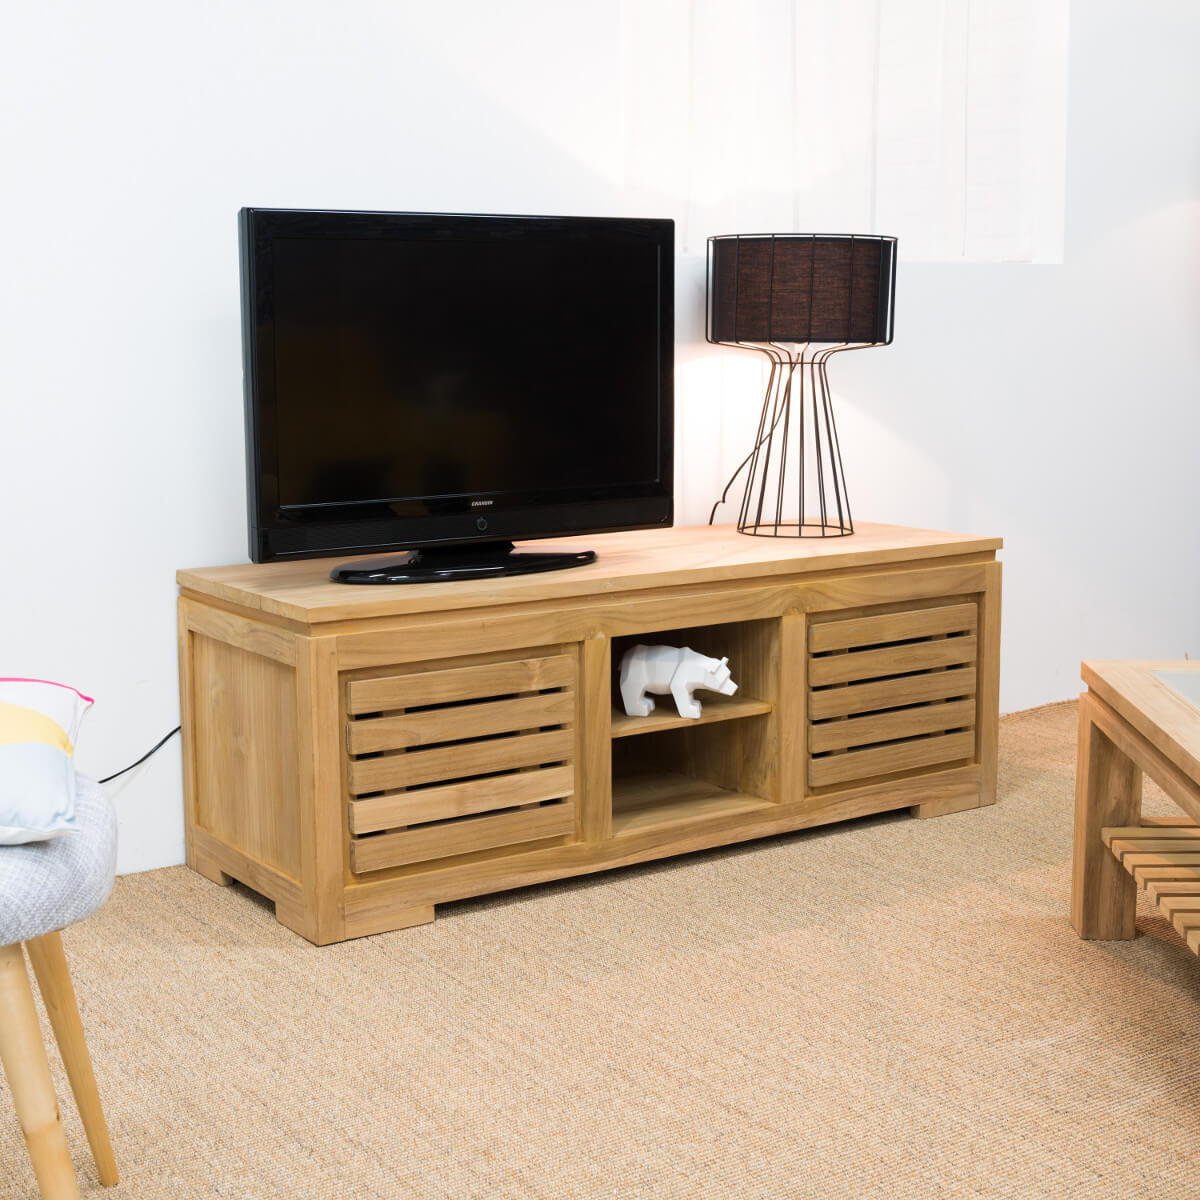 Meuble Tv Teck Meuble Tv Bois Naturel Rectangle Zen 140 Cm # Meuble Tv Design Suedois